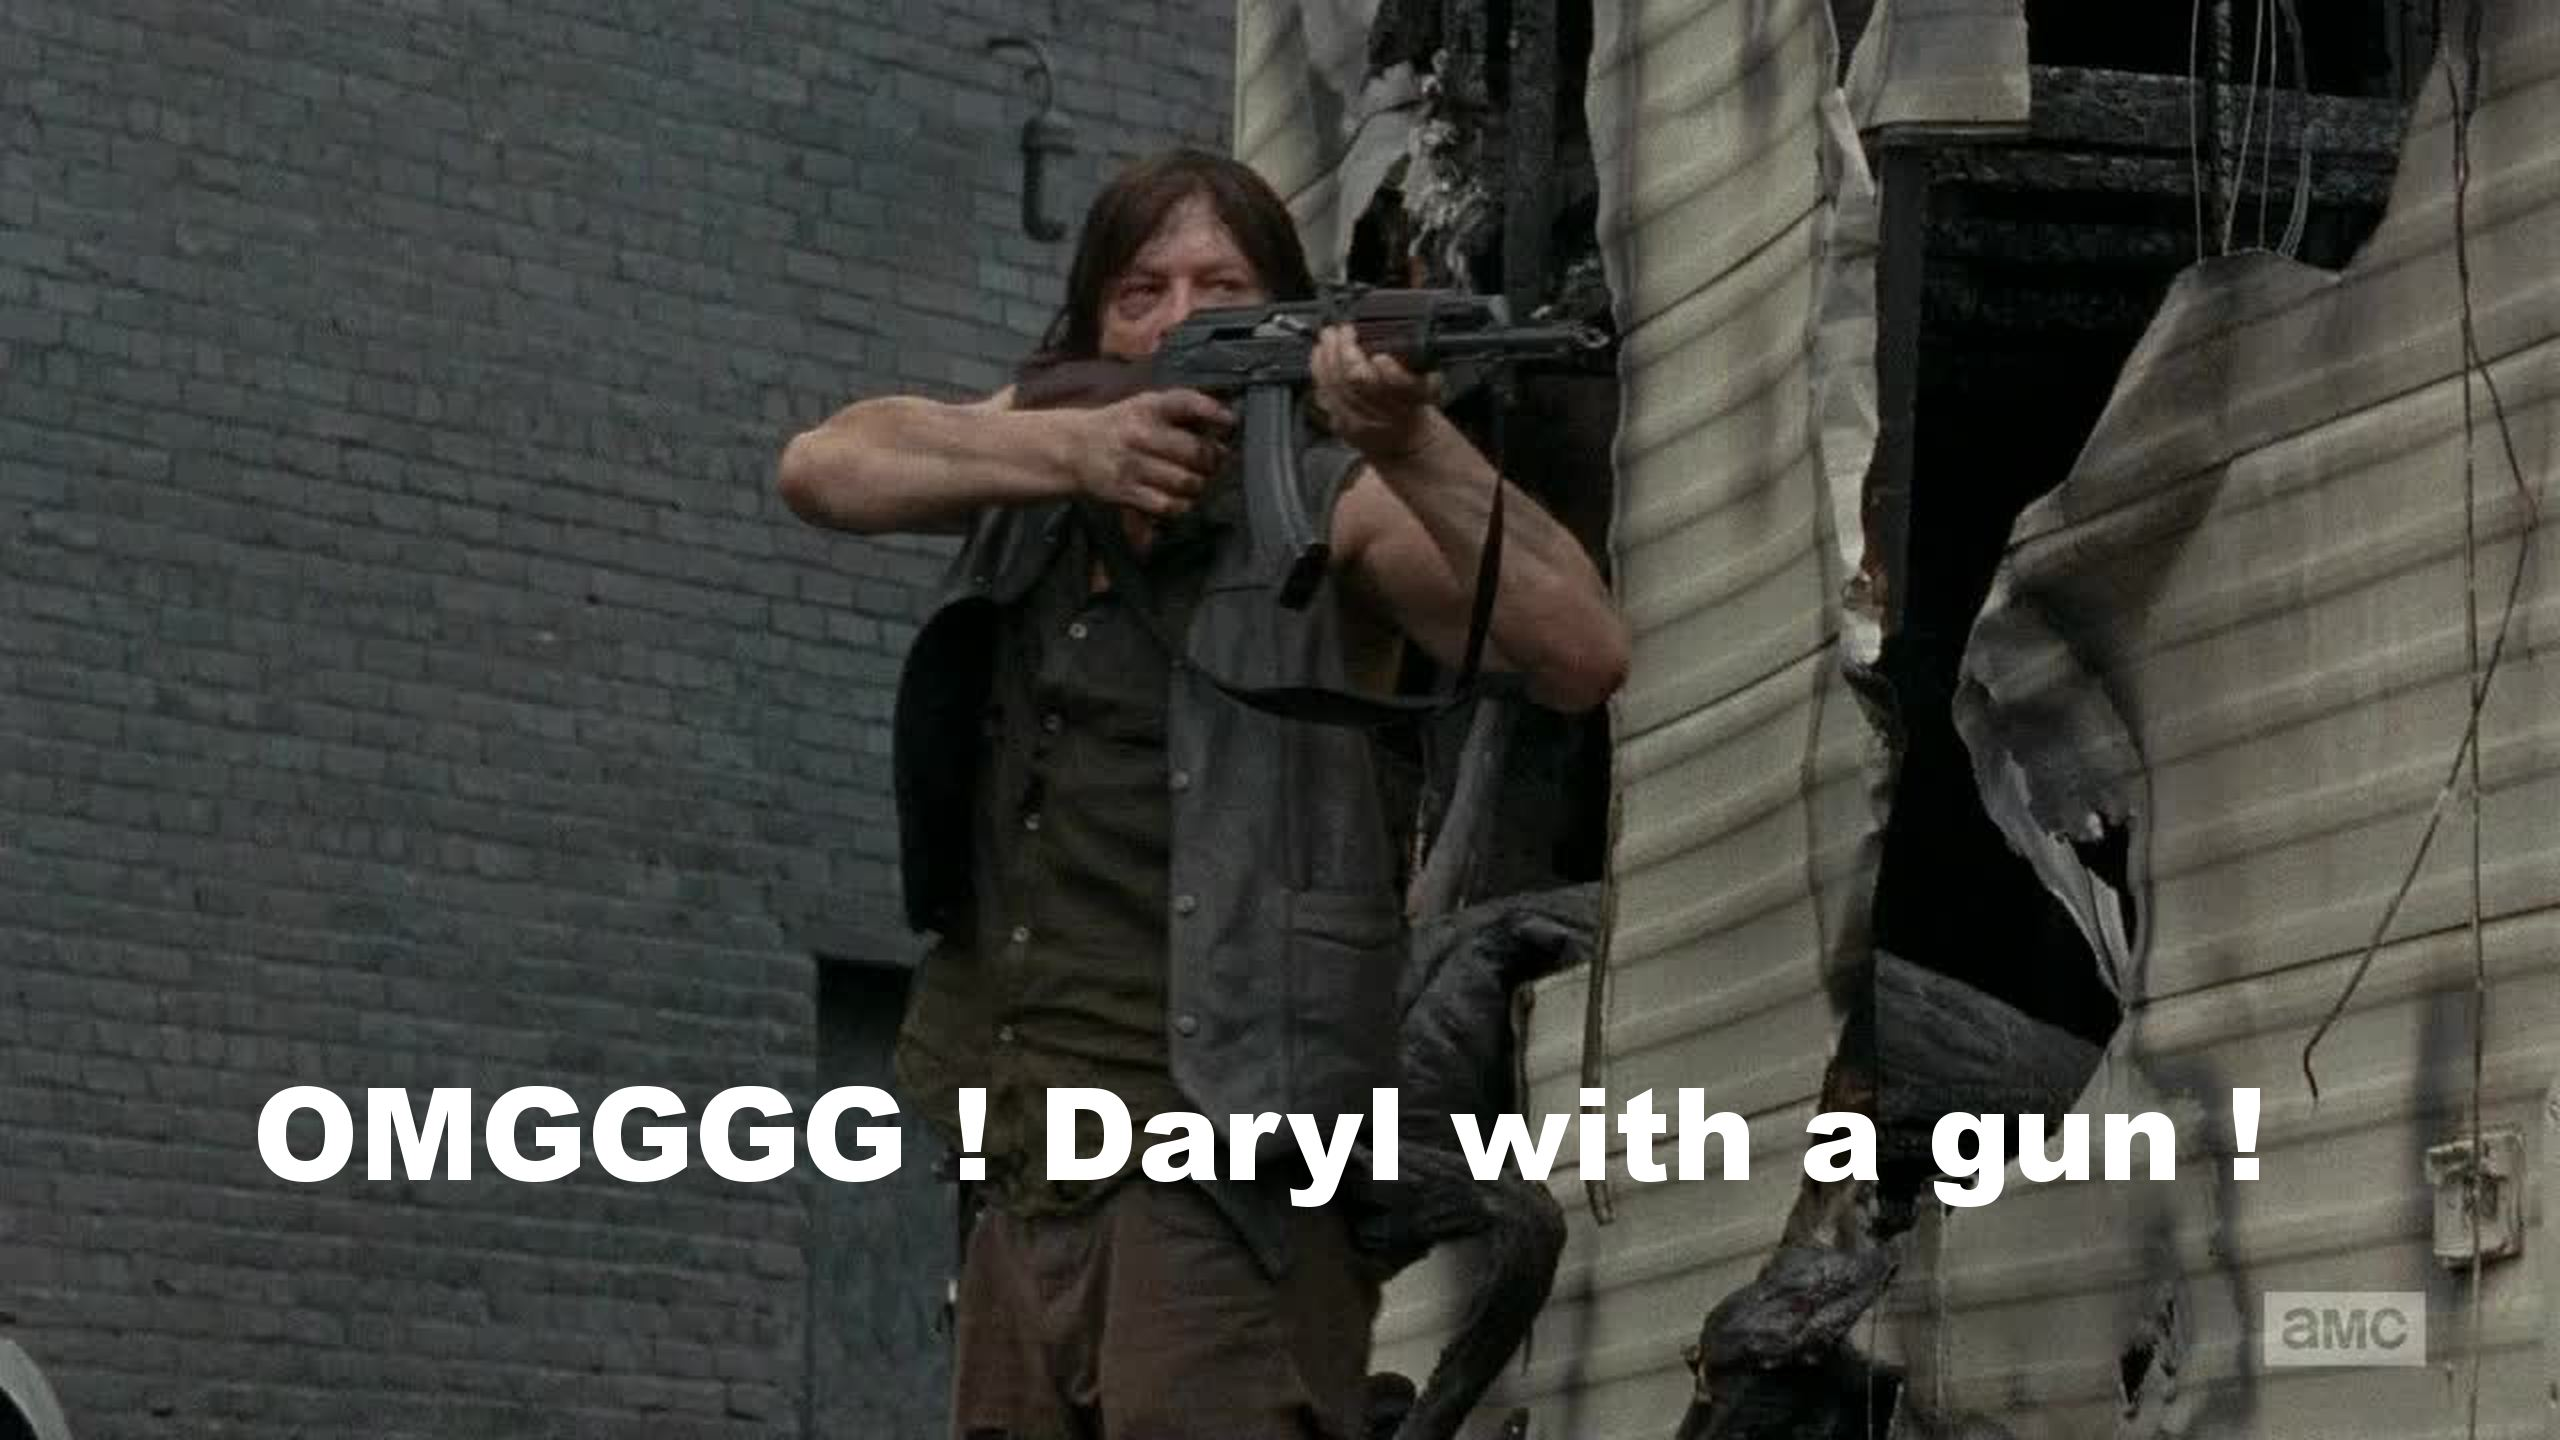 It's so weird when he doesn't have his crossbow